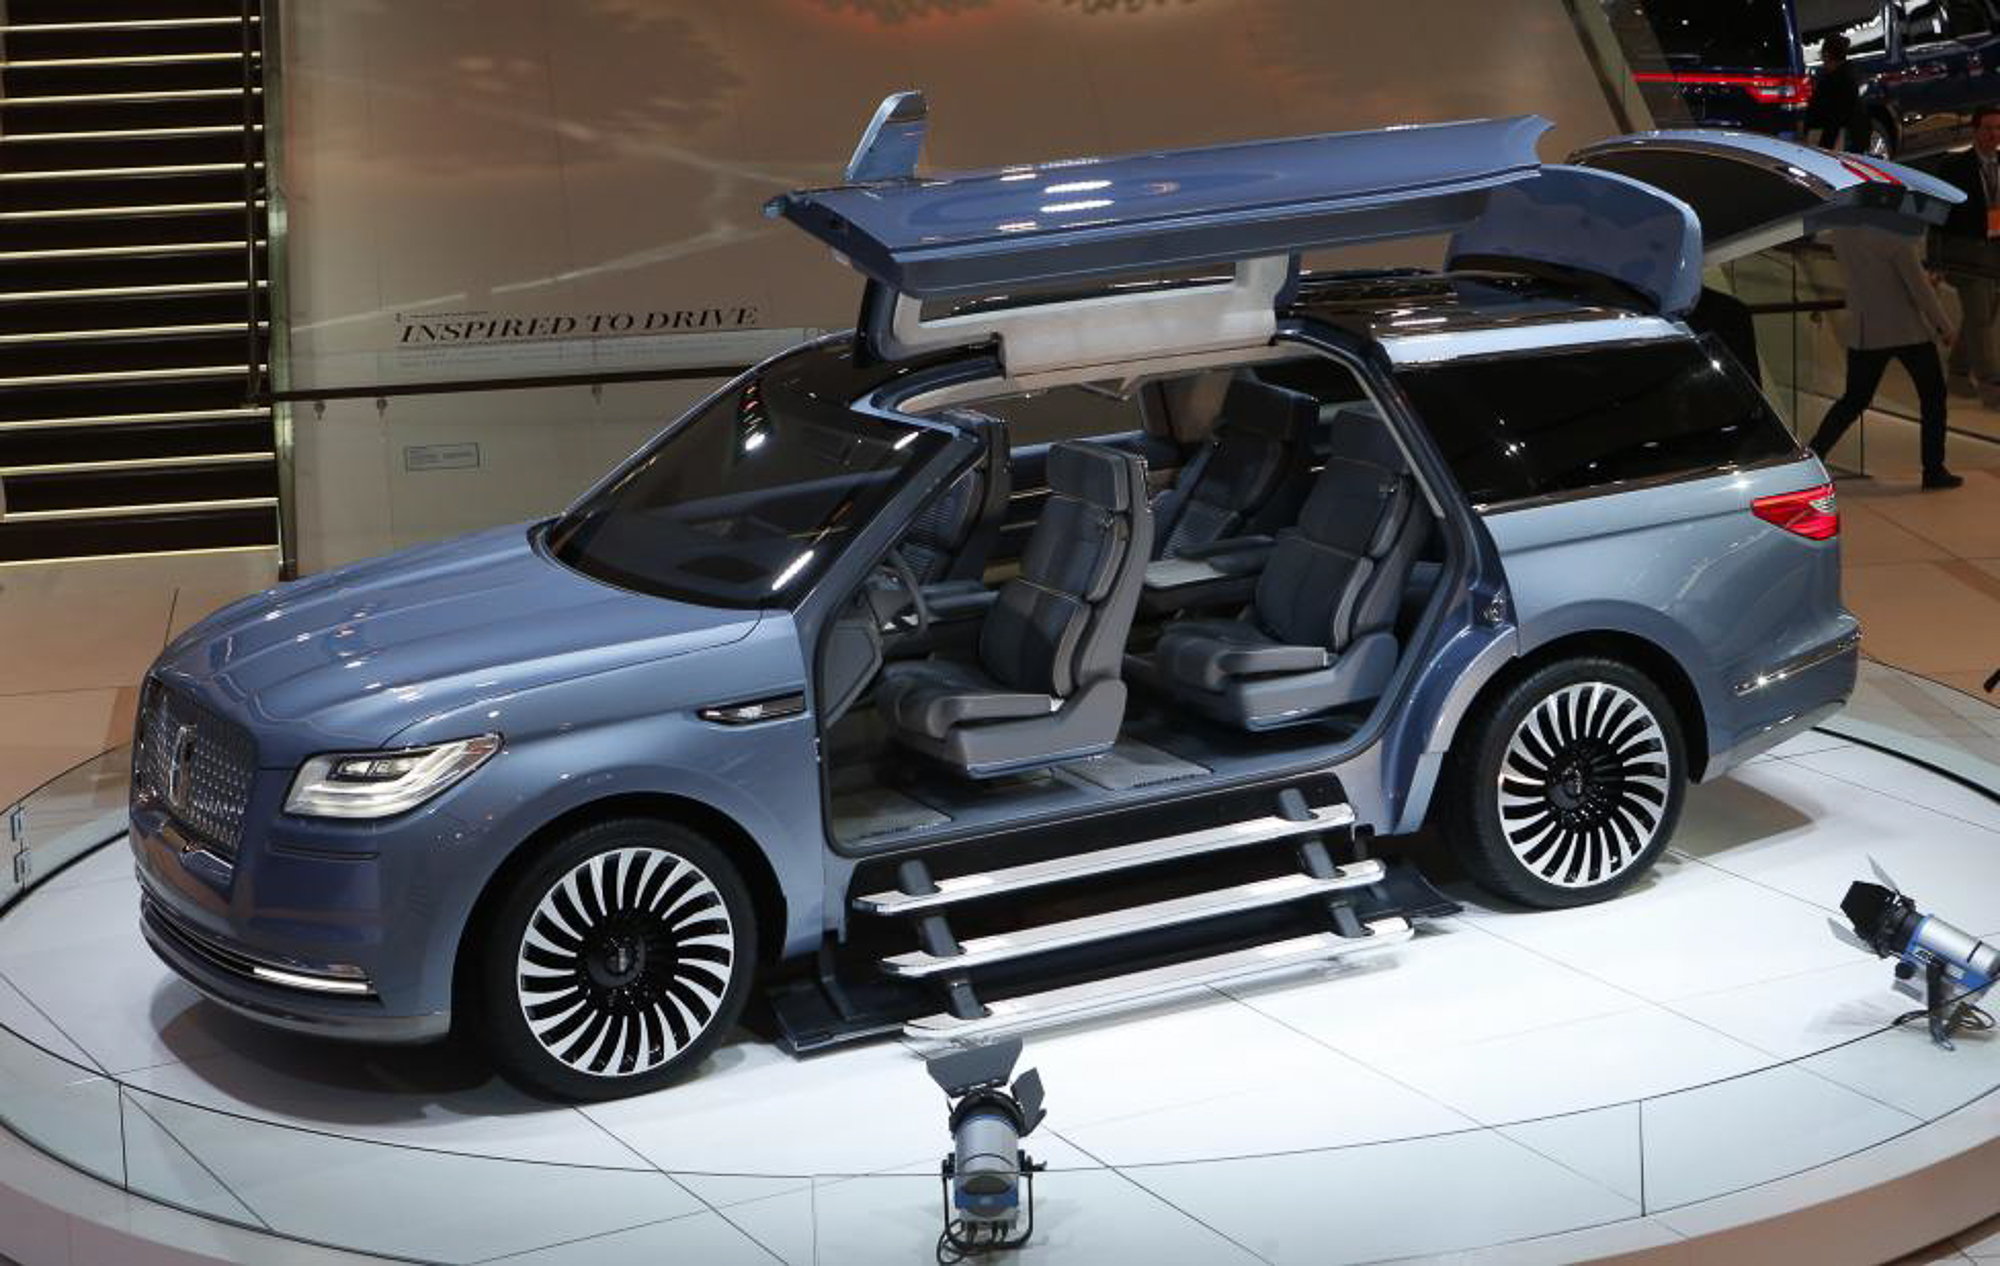 The Lincoln Navigator concept SUV. PHOTO: REUTERS